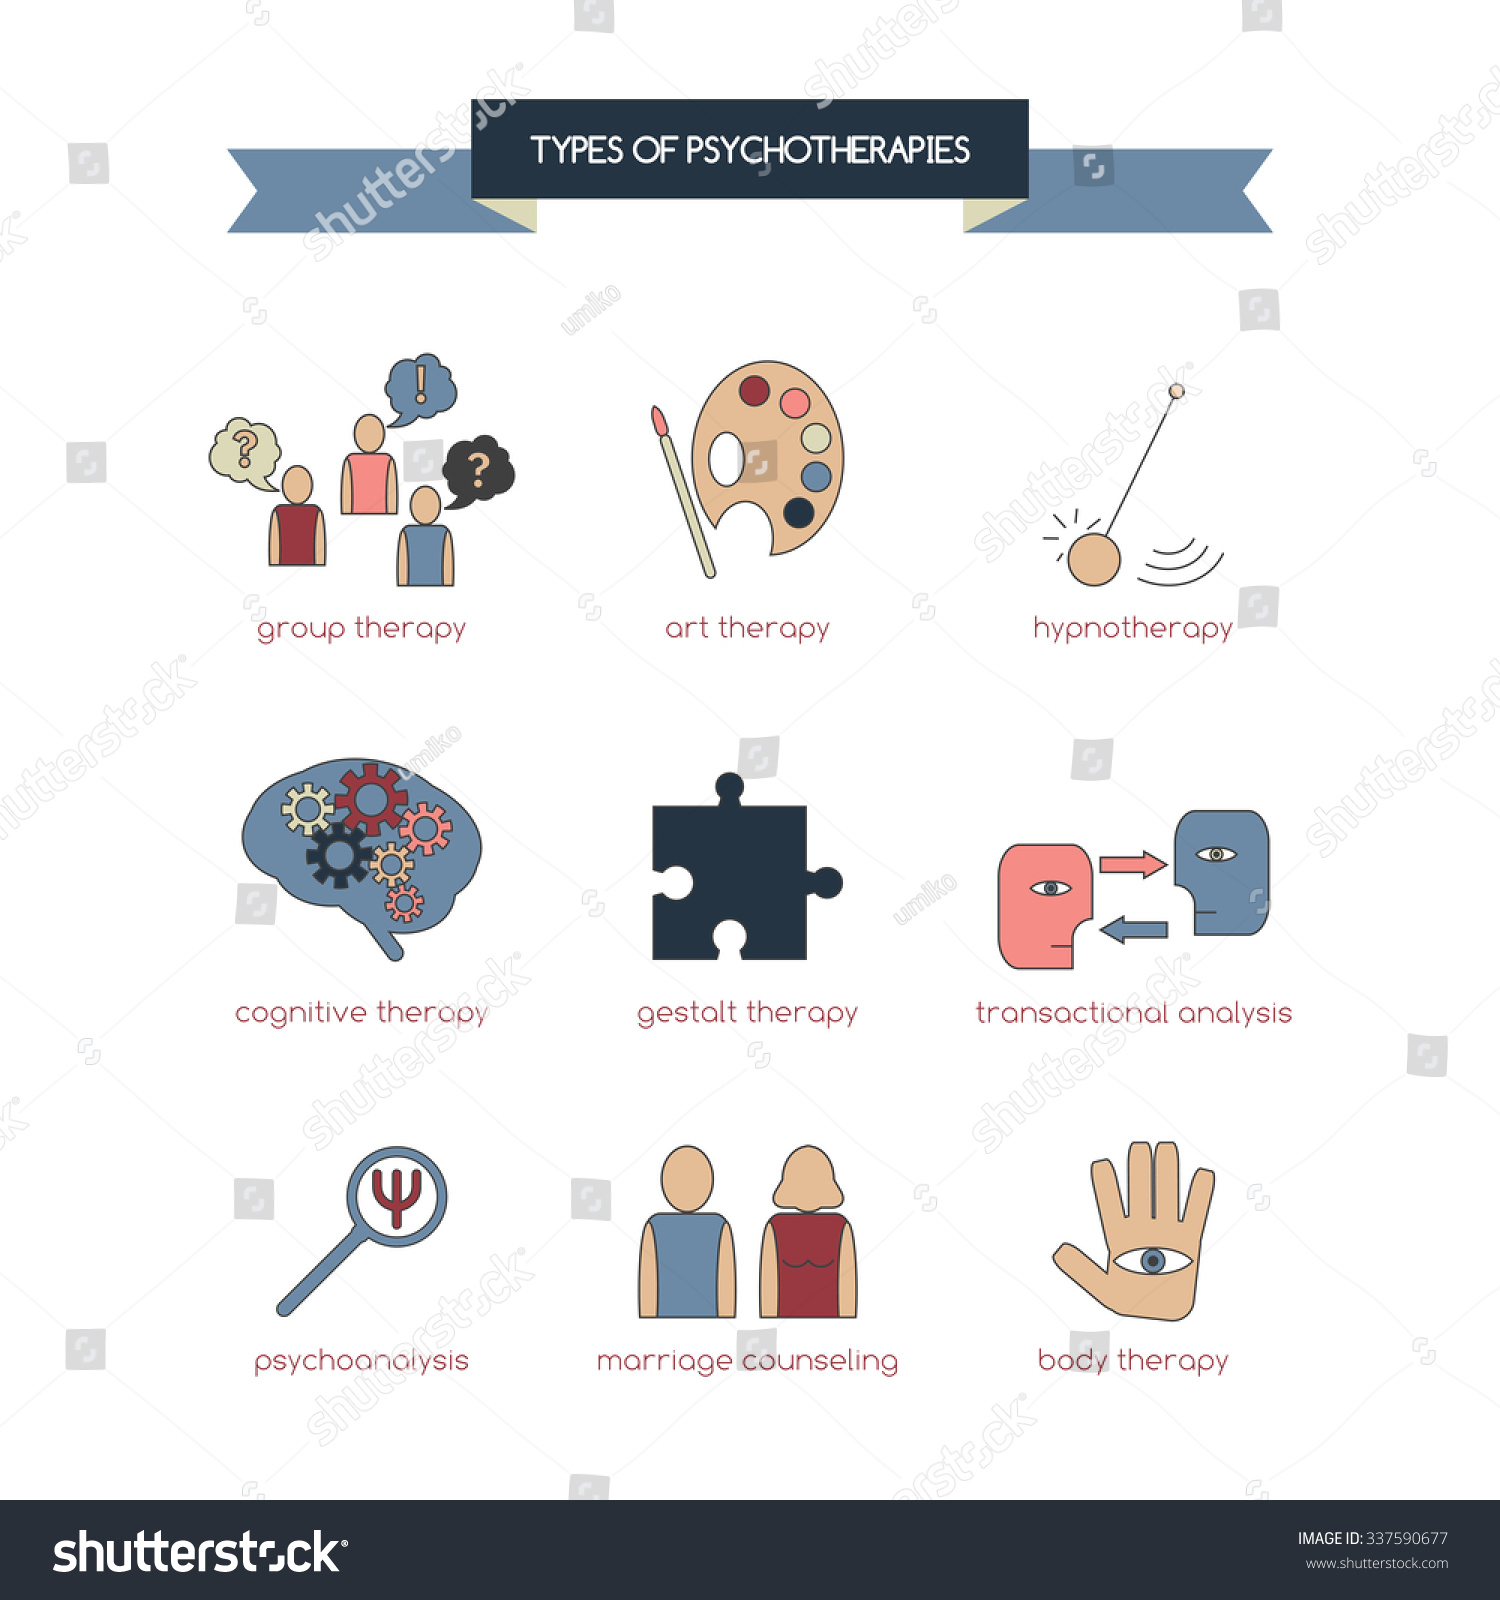 Art color psychology - Art Color Psychology Set Of Color Psychology Vector Line Icons Types Of Psychotherapies Features Group